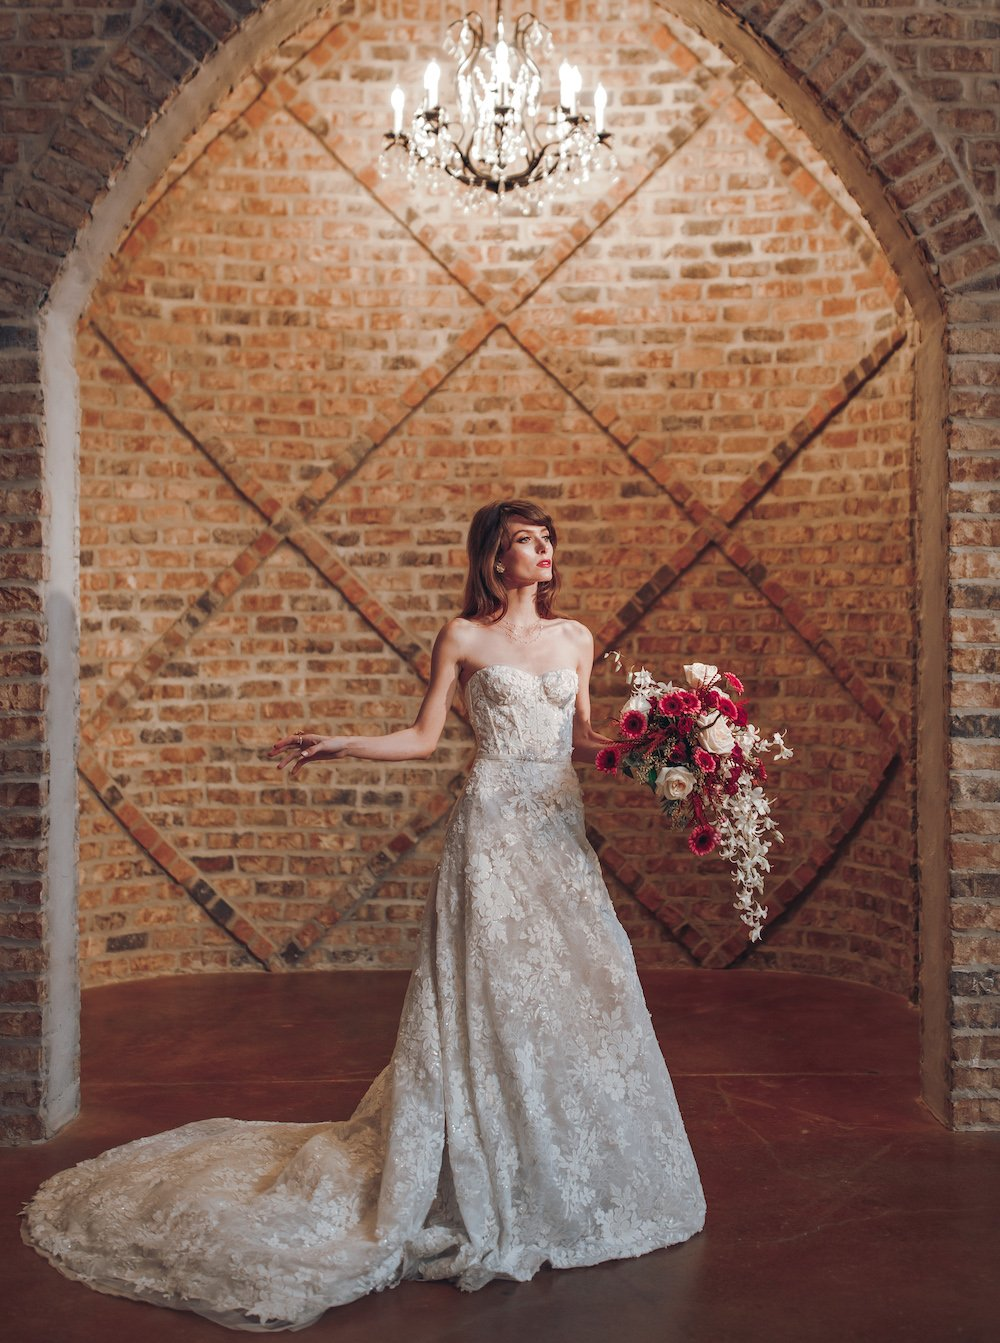 Lace strapless bridal gown.